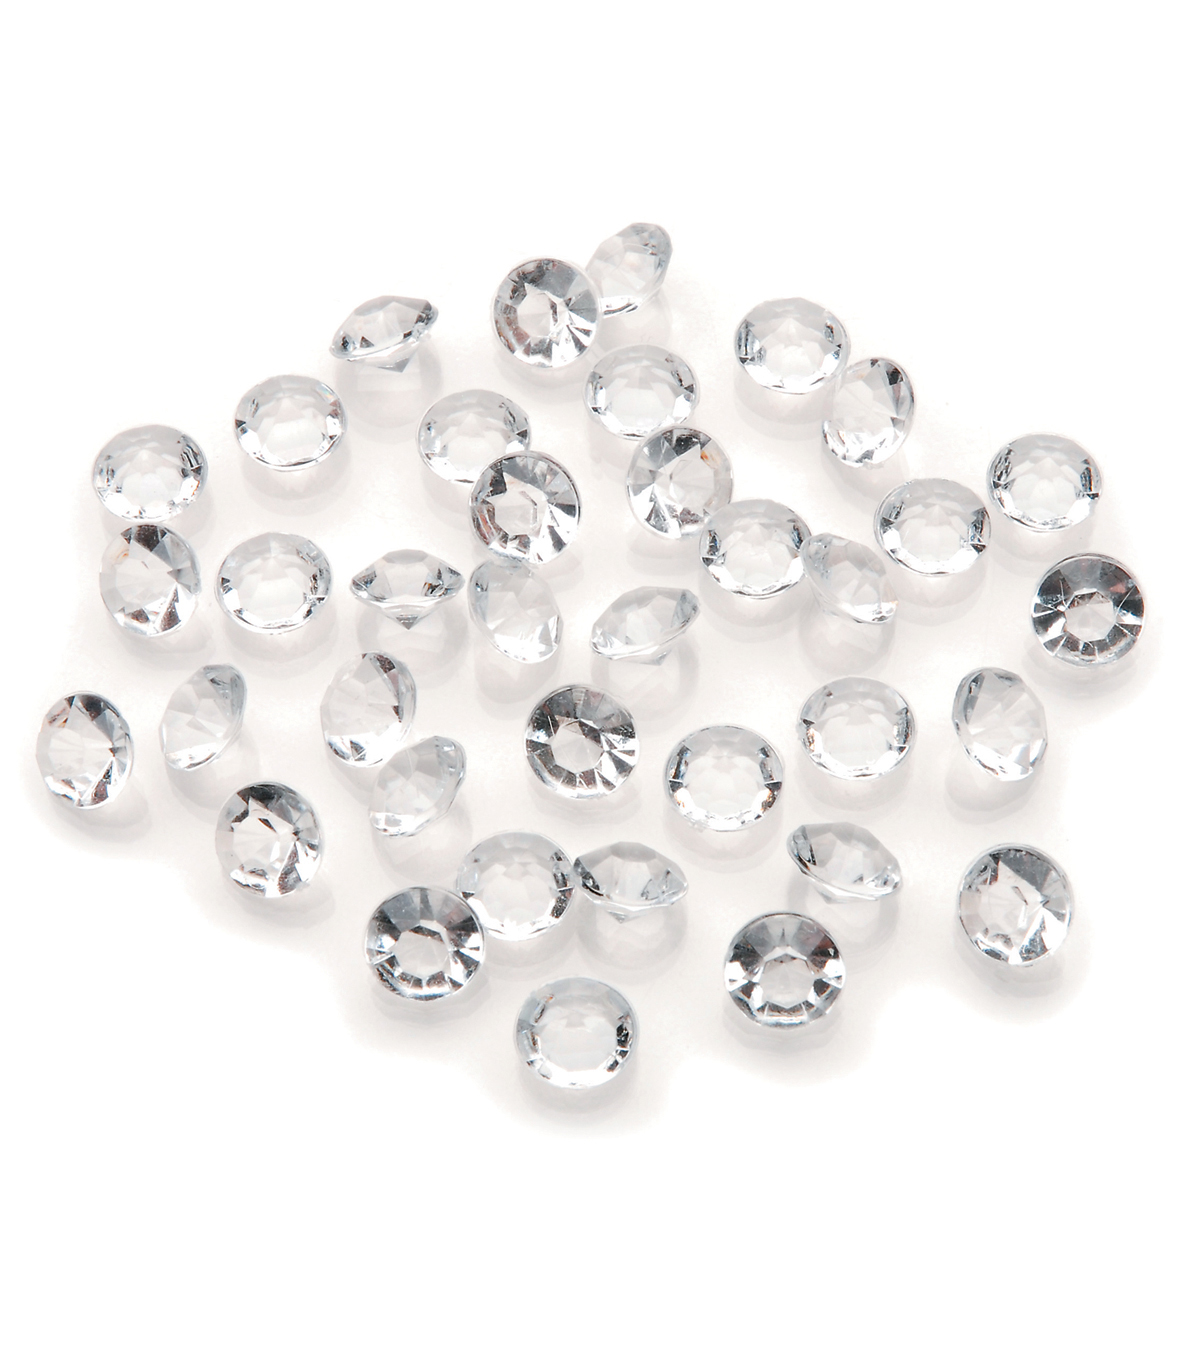 Darice 800pk 8mm/4 Carat Diamond Ice Gems-Clear